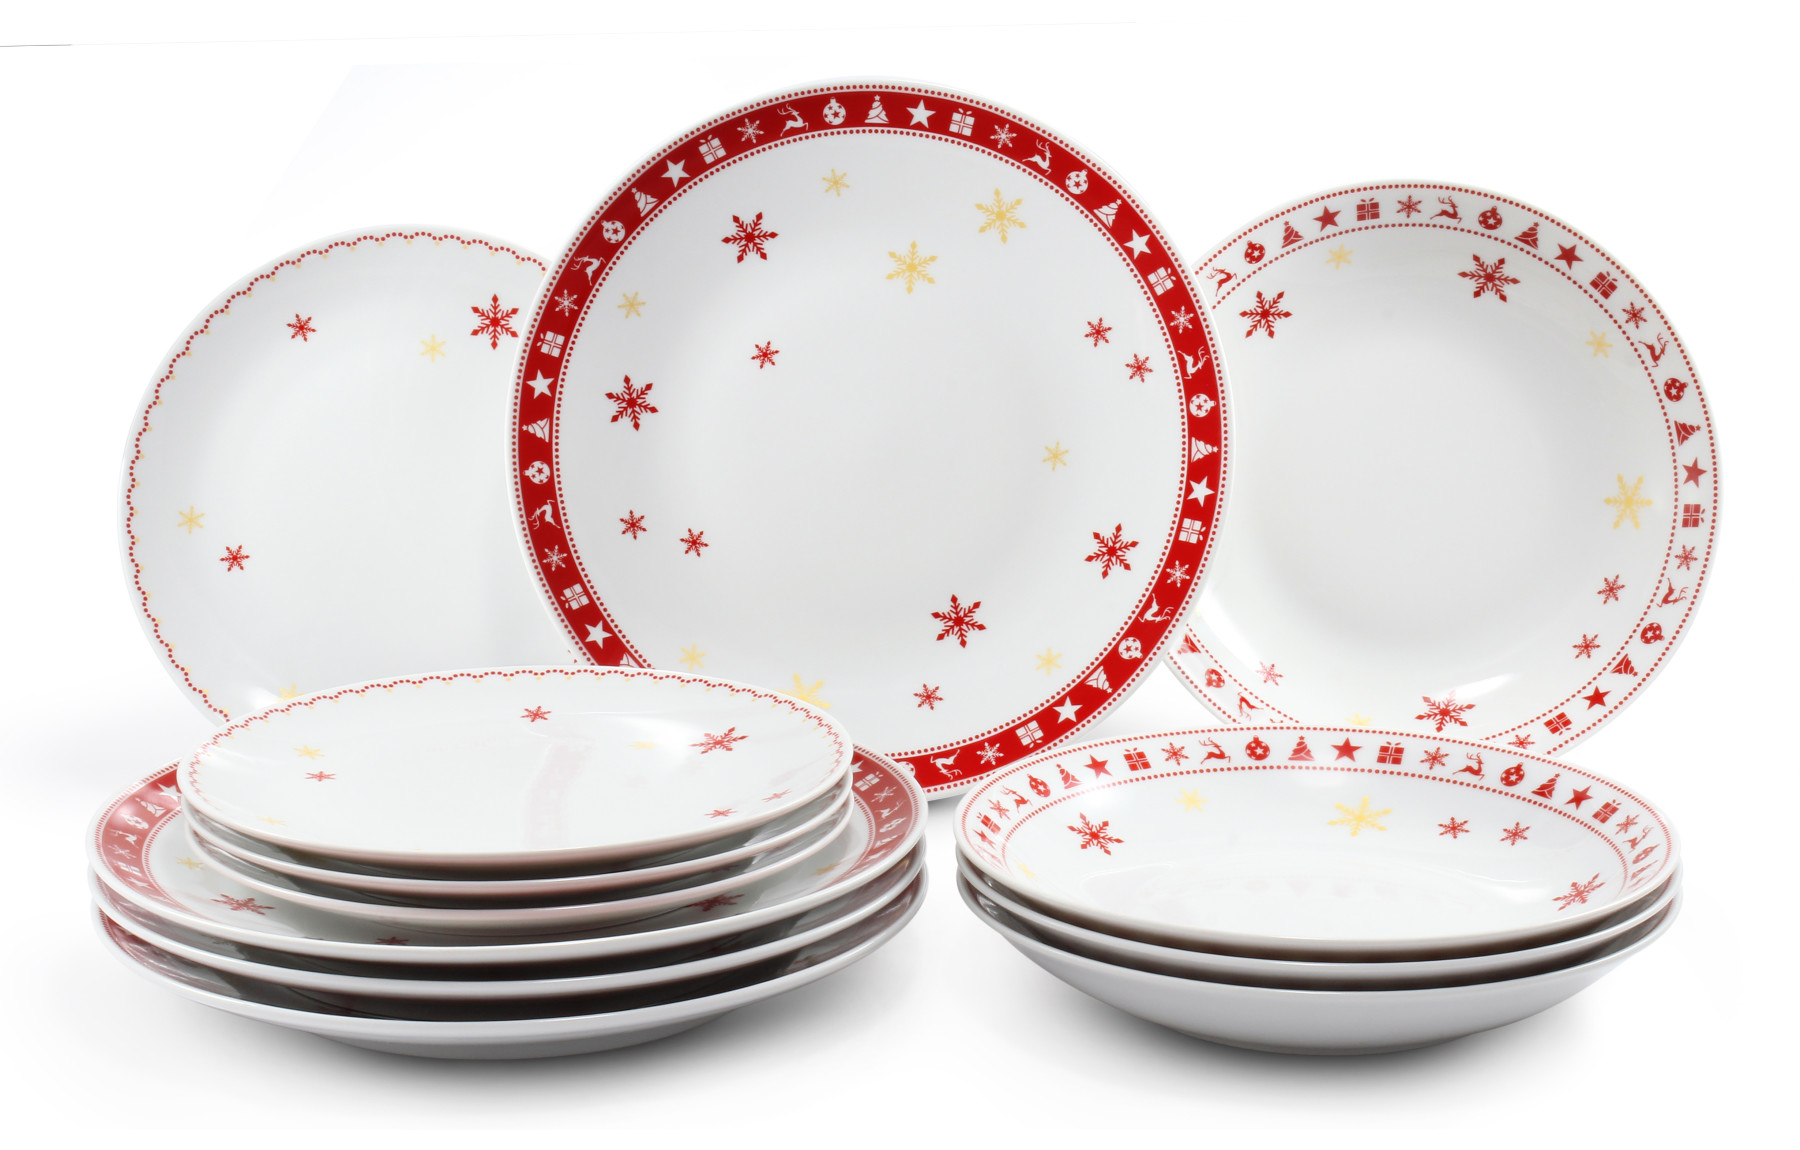 Plate set 12-piece Christmas dreaming